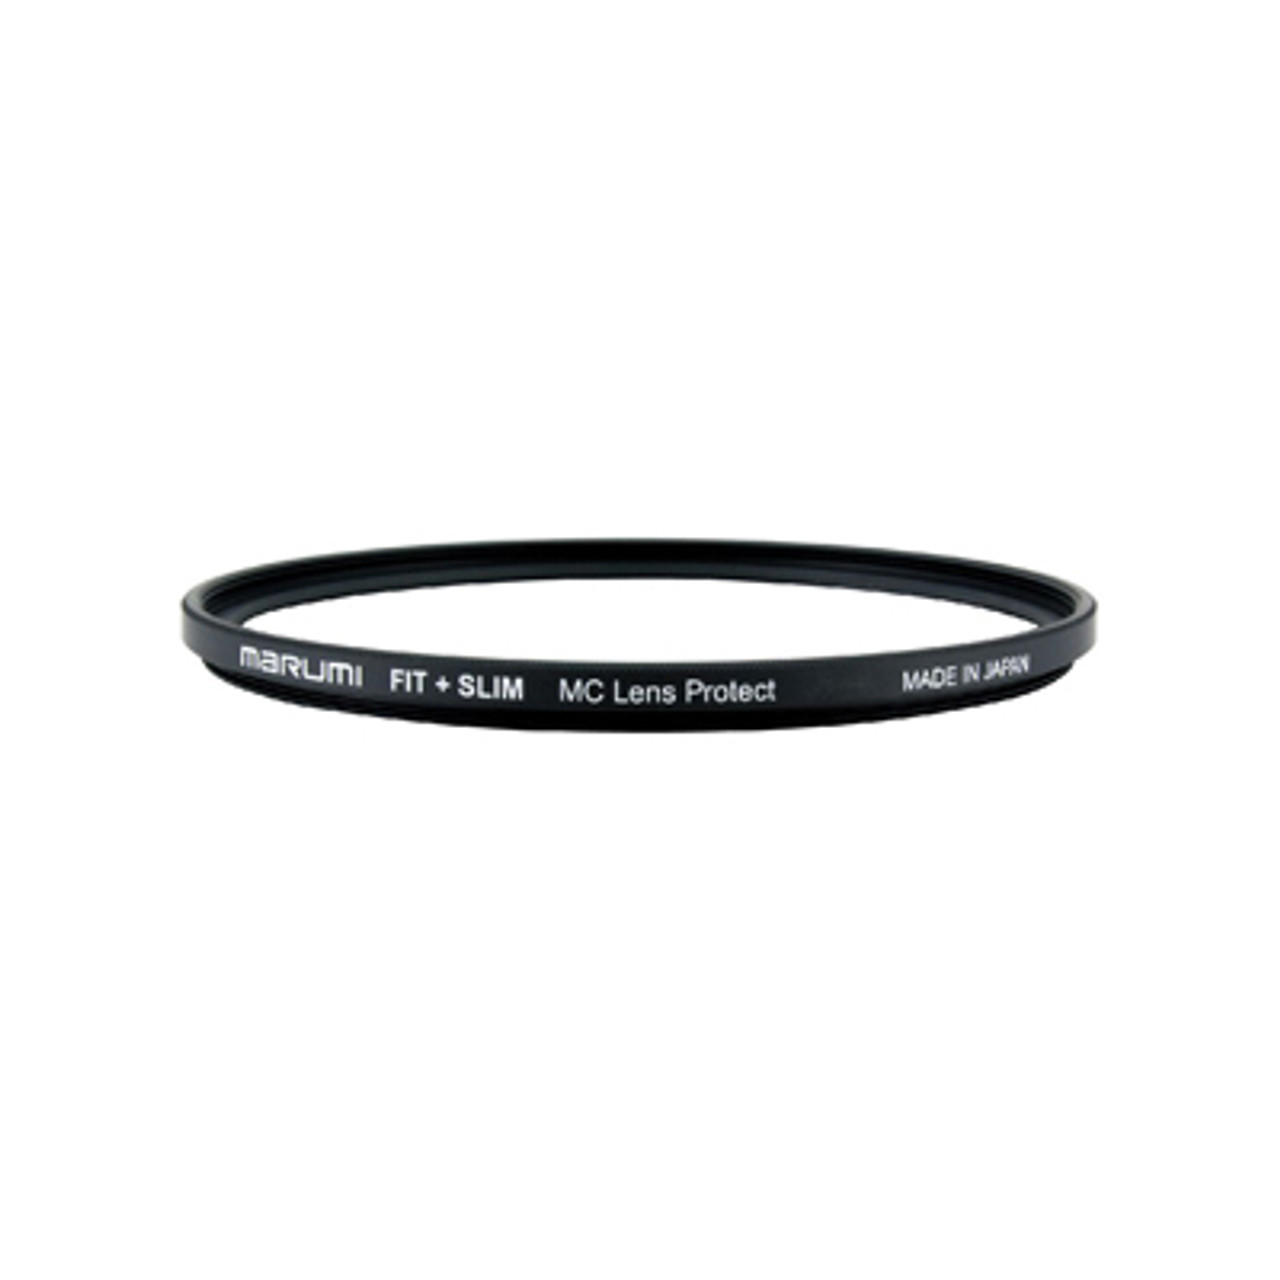 Marumi 52mm Lens Protect Filter